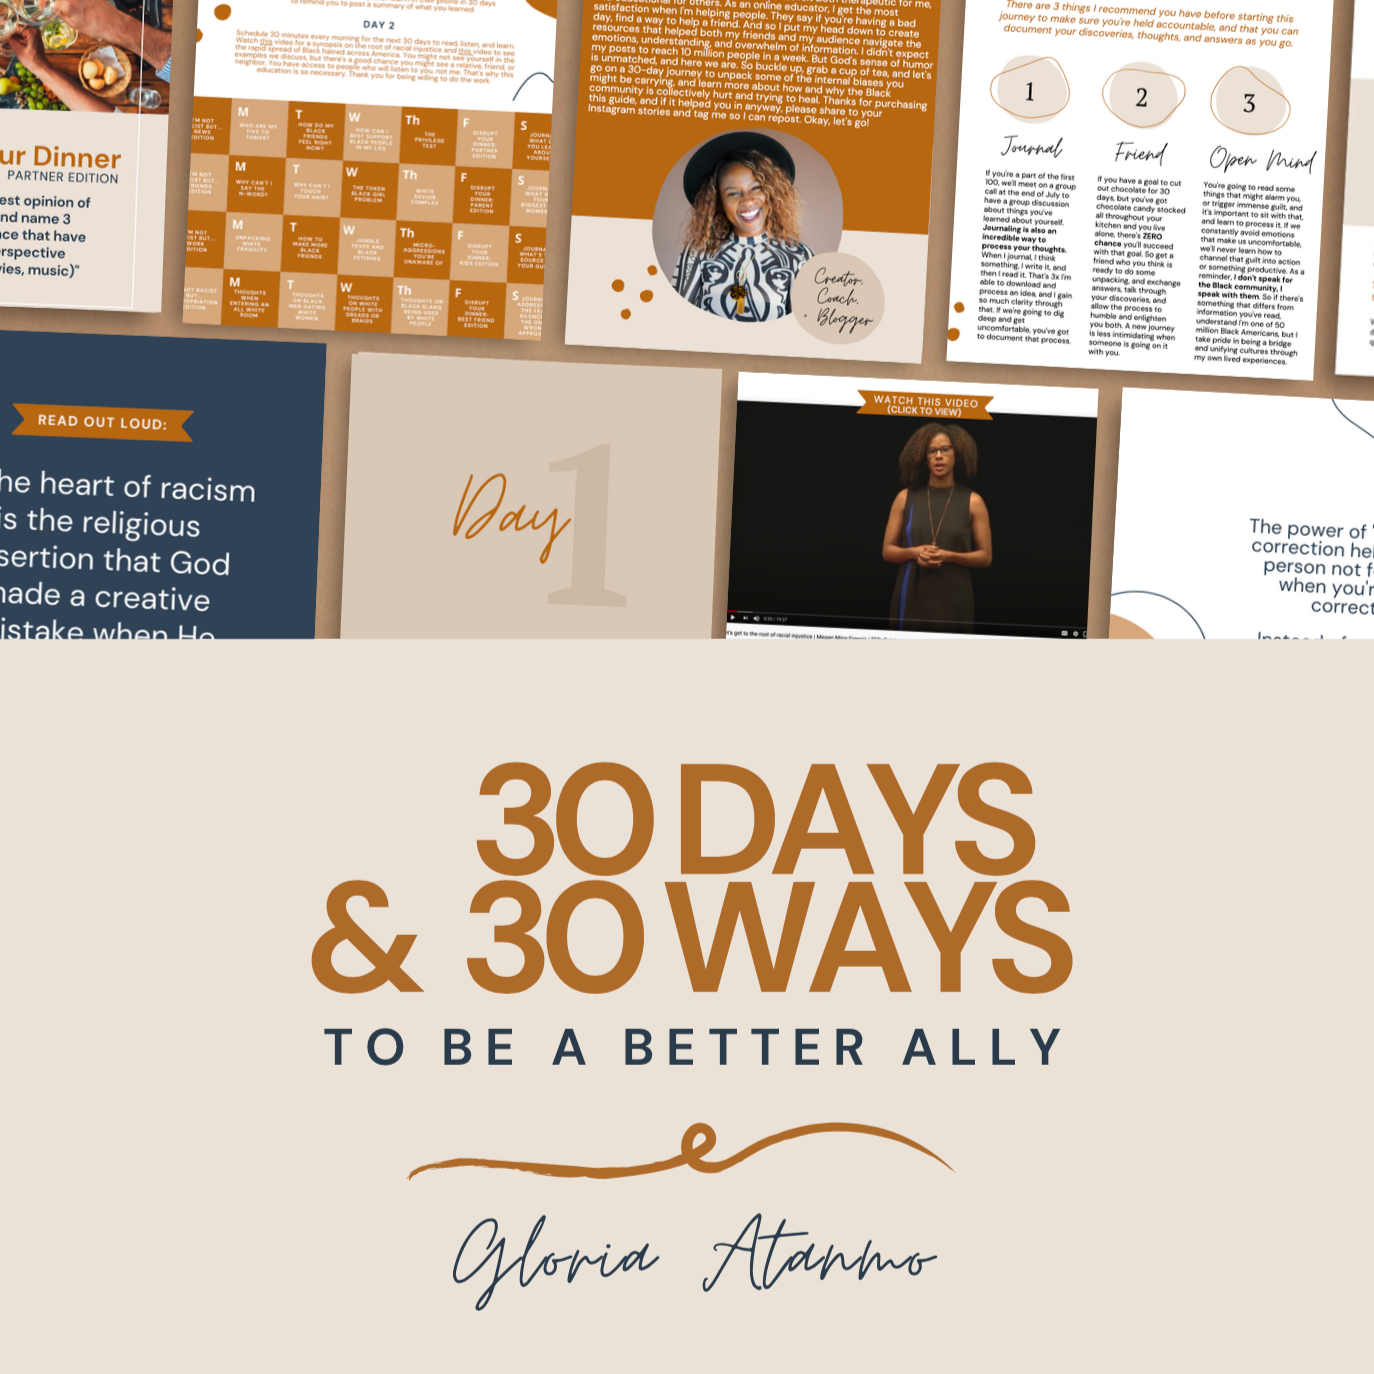 Glo Atanmo Anti-Racism: 30 Days & 30 Ways to Be a Better Ally Link Thumbnail   Linktree